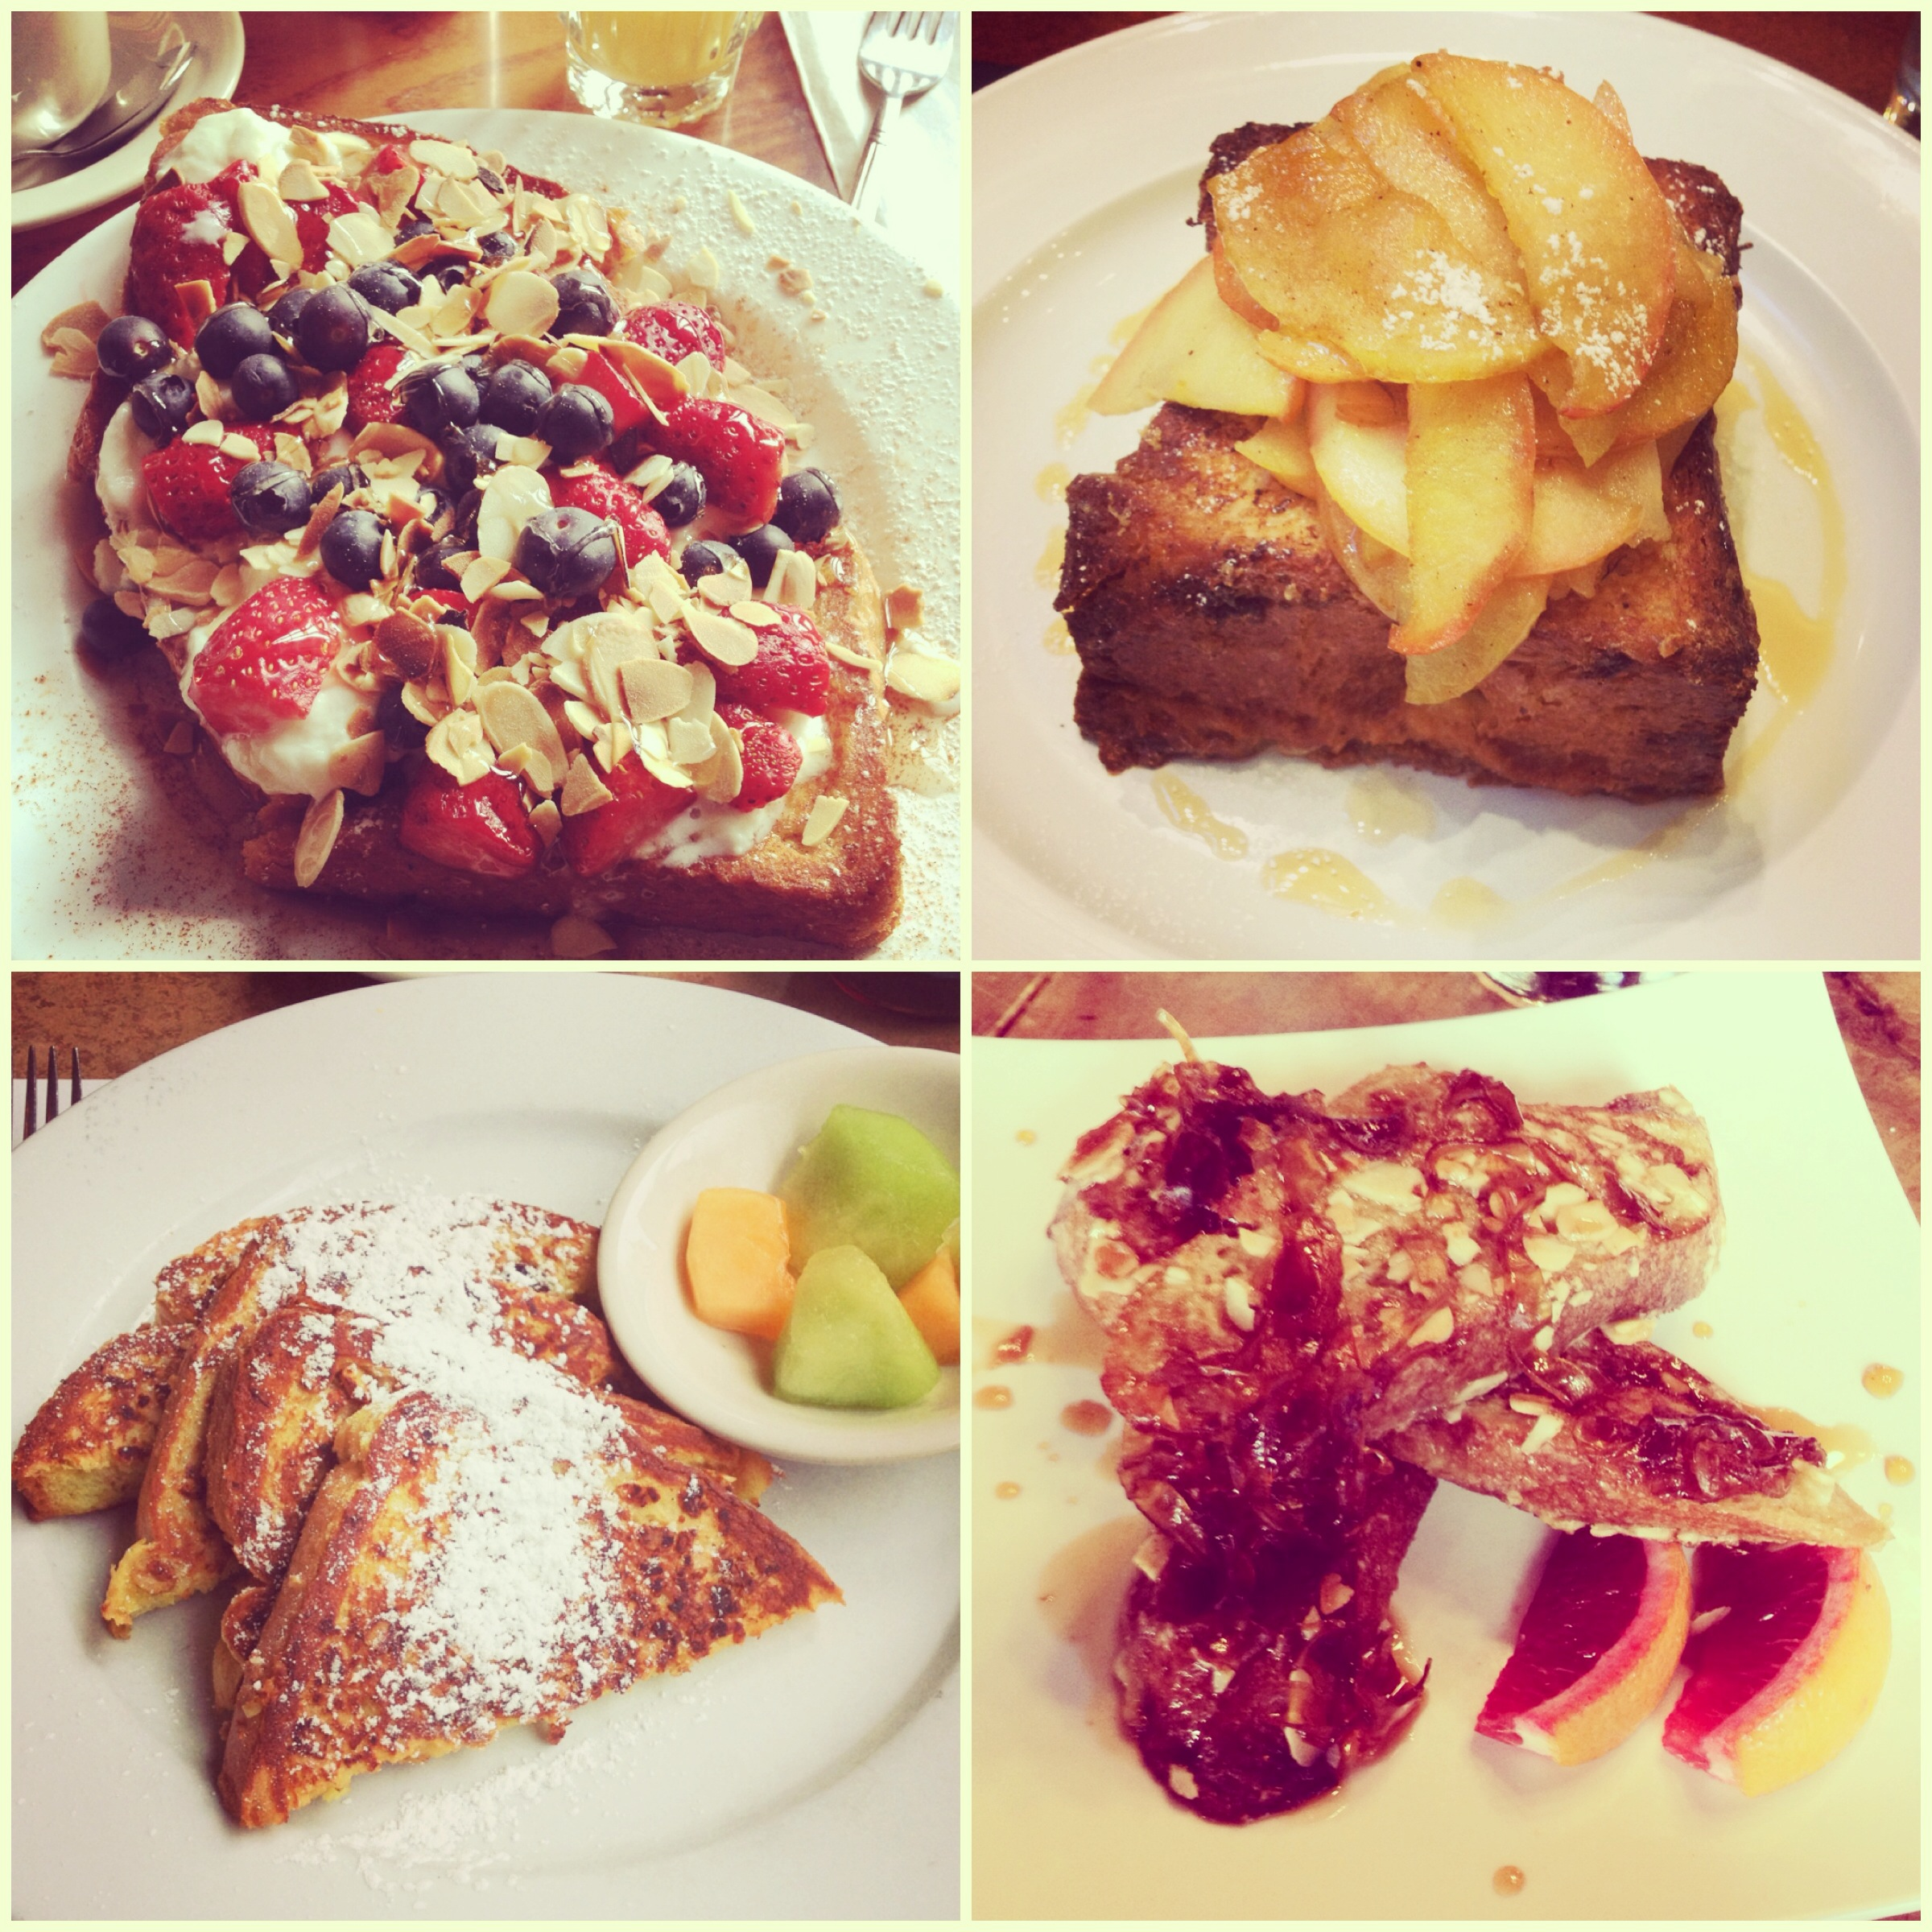 5 Amazing French Toasts of New York (Move Over Humans of NY)